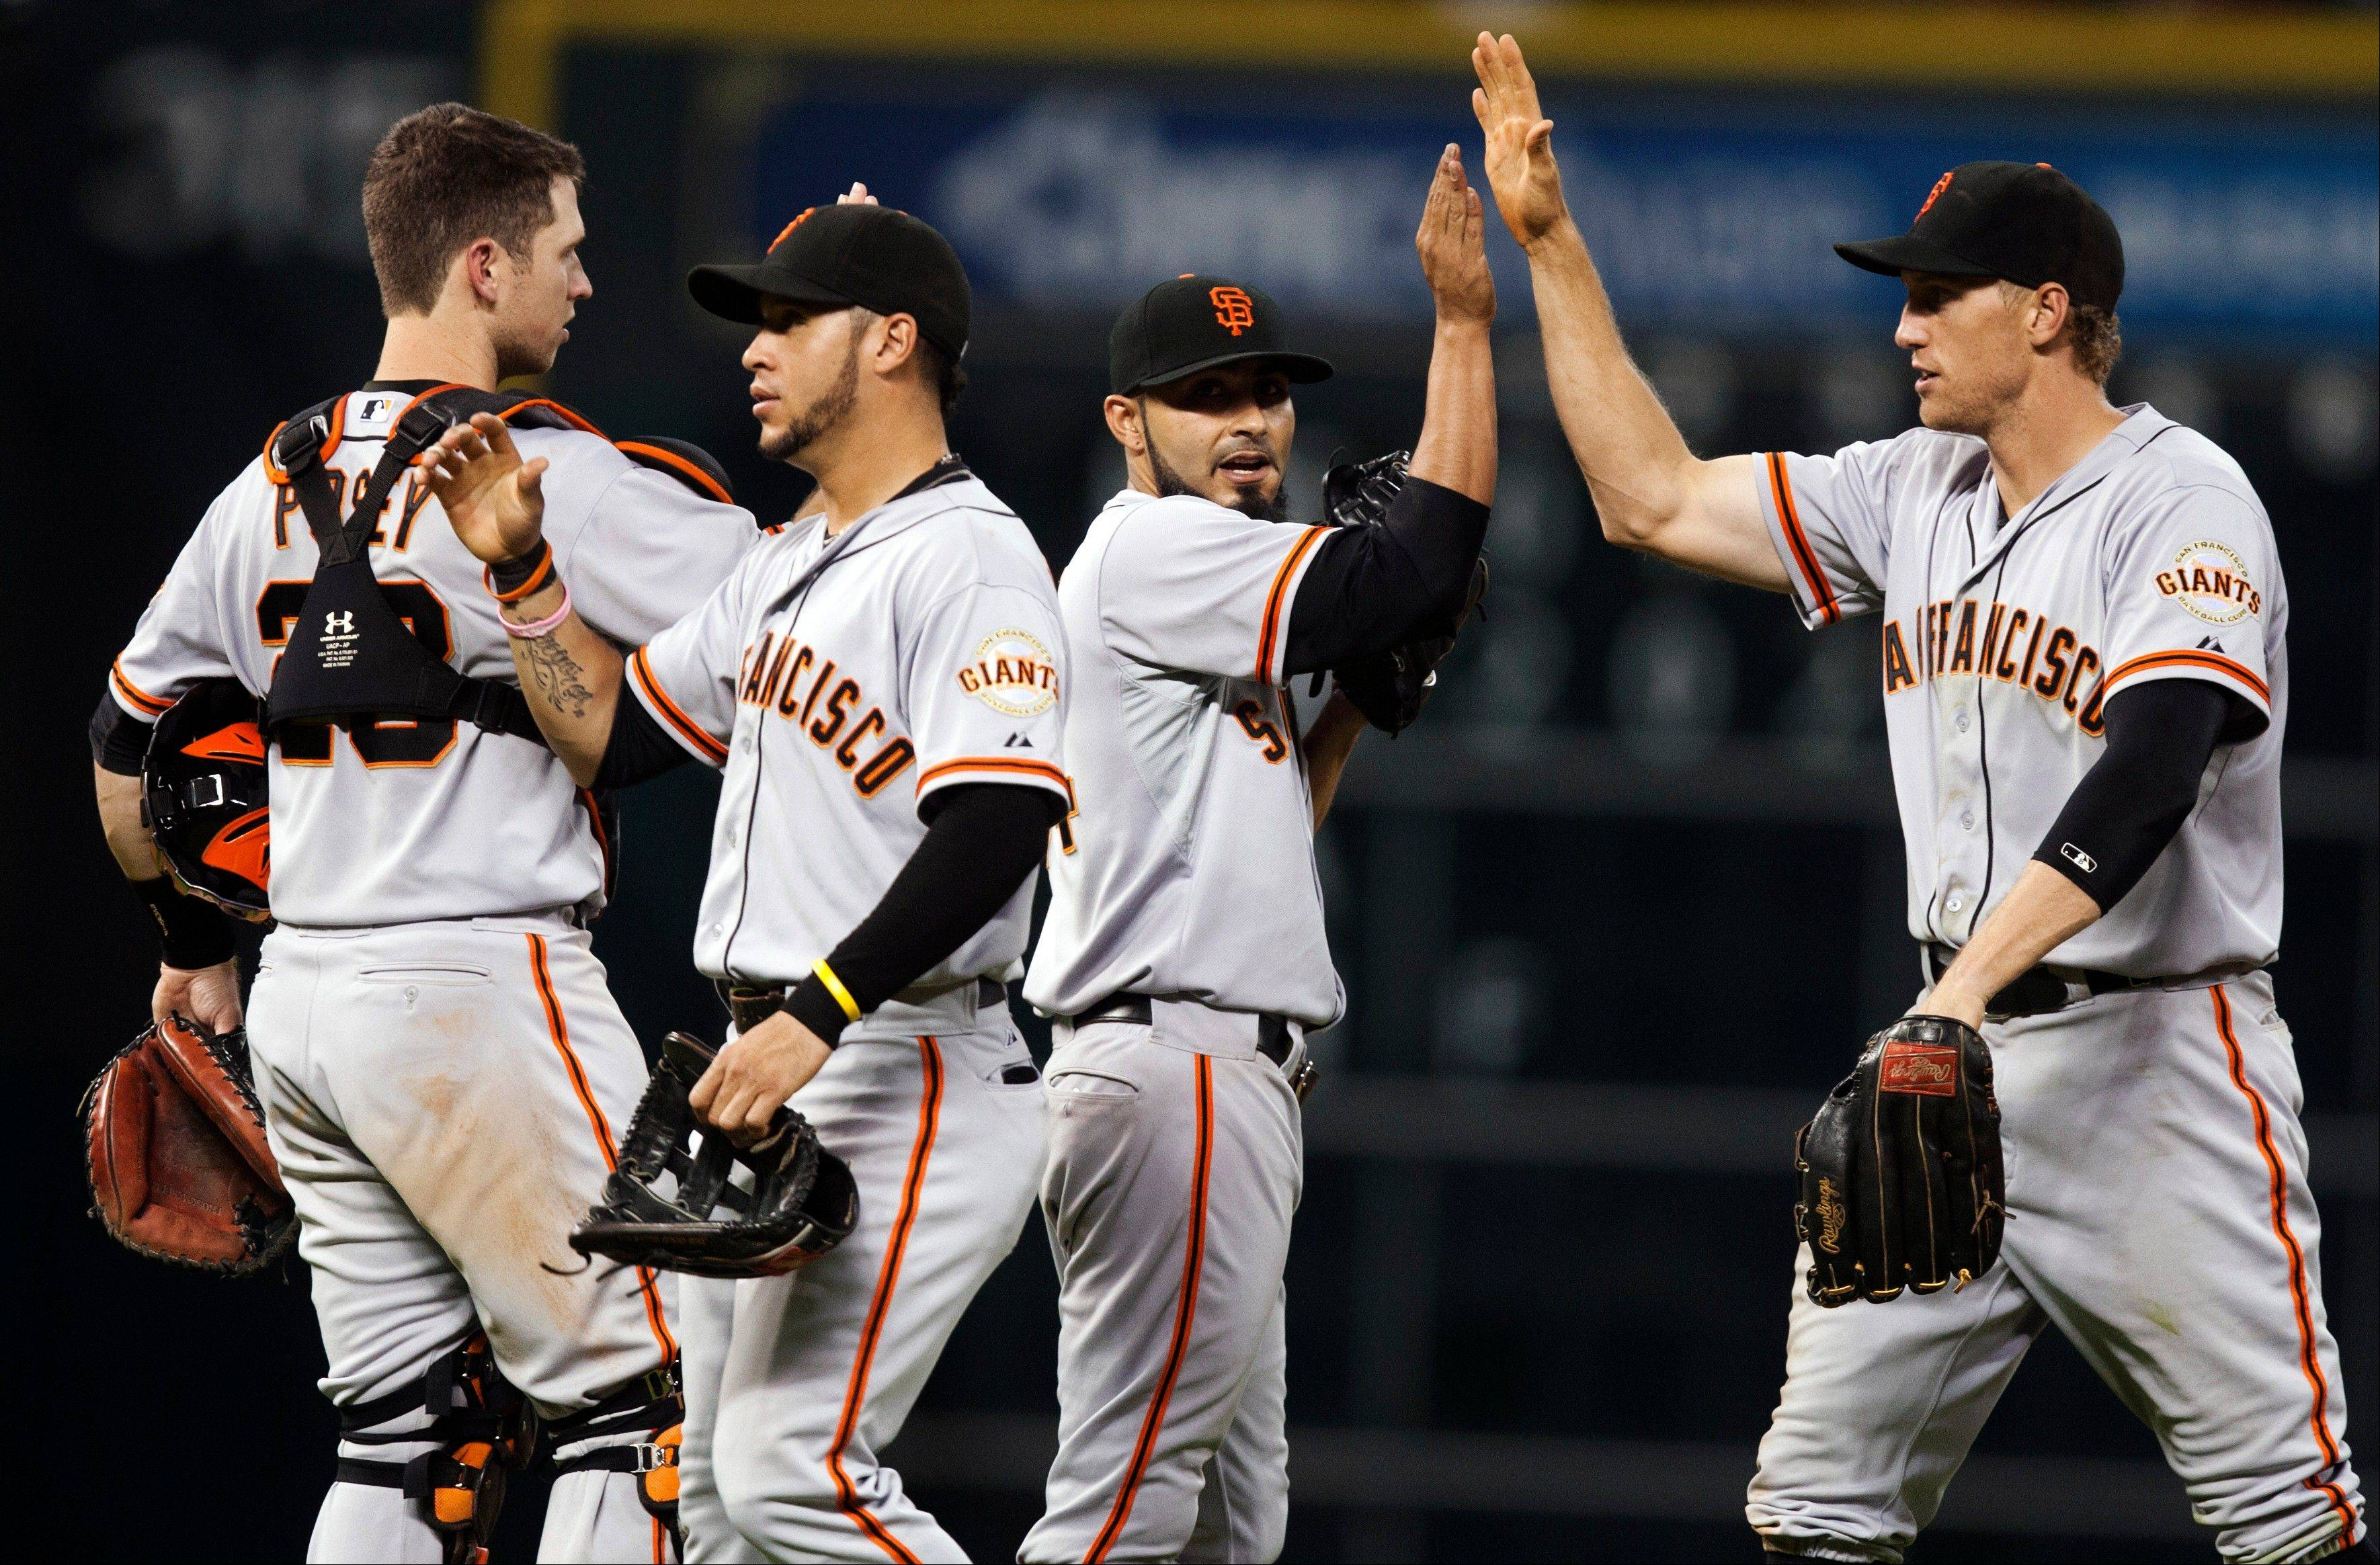 San Francisco Giants relief pitcher Sergio Romo (54) celebrates with teammates after defeating the Houston Astros 8-4 on Thursday in Houston.